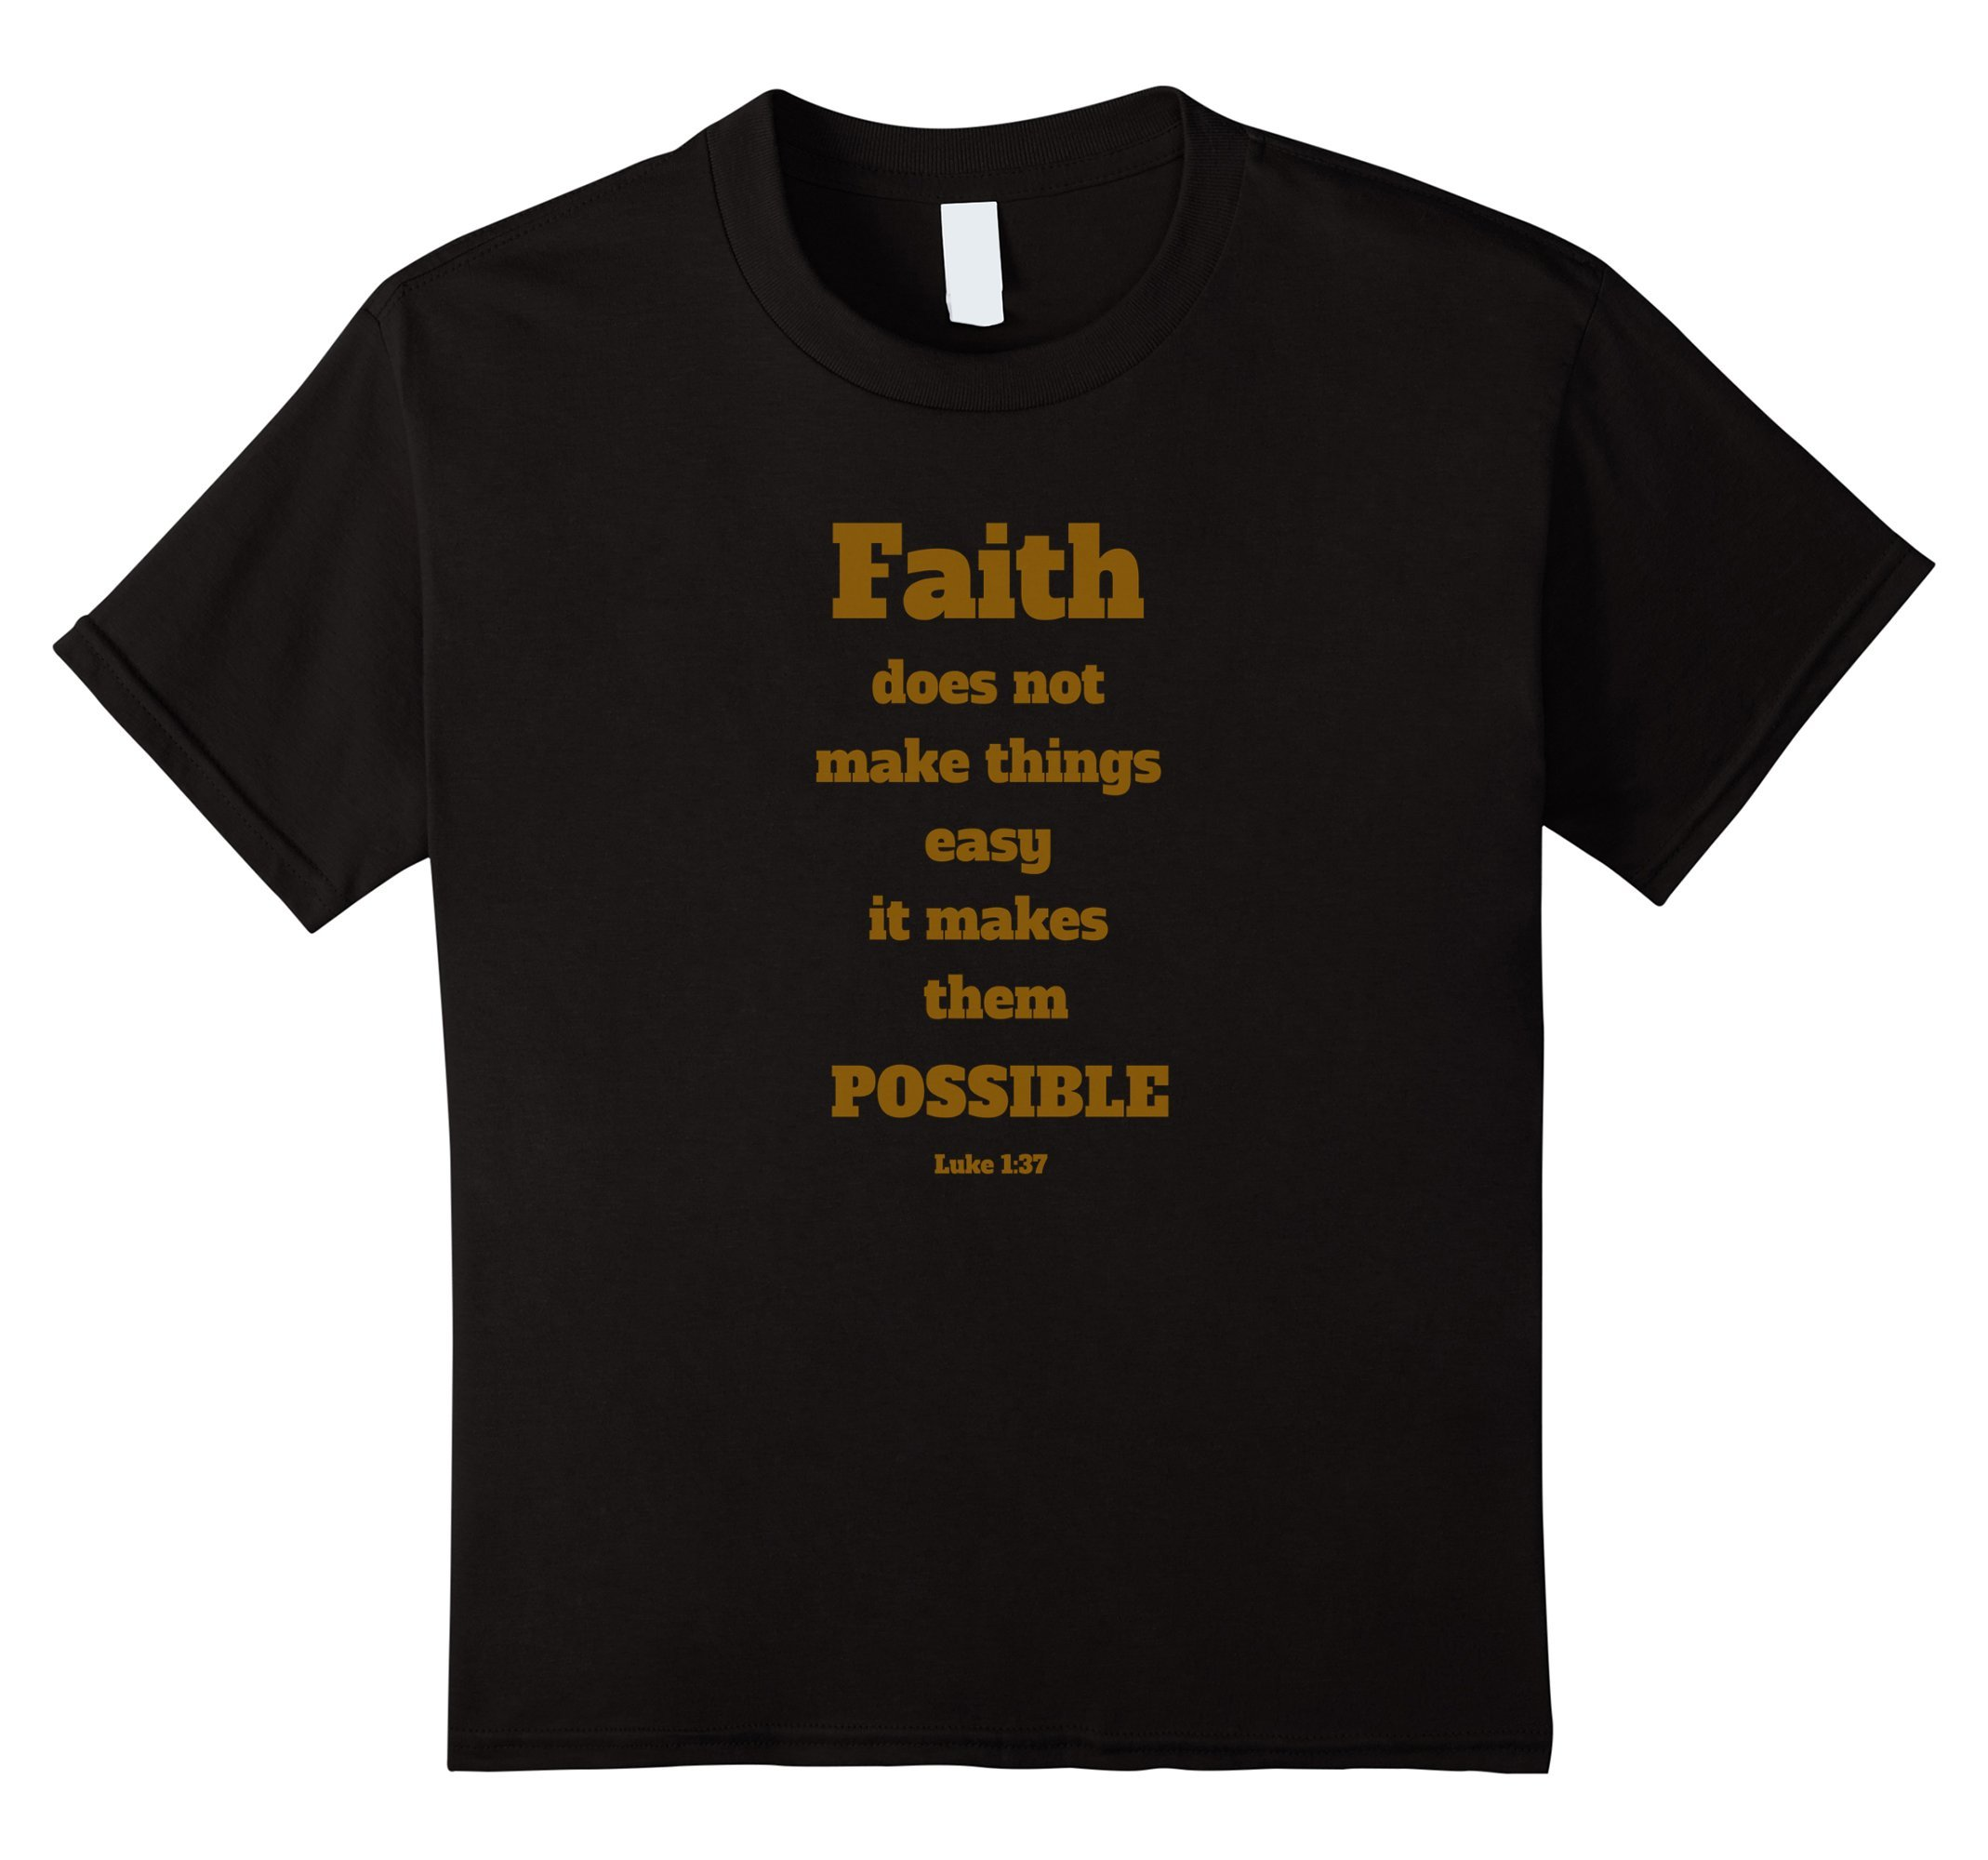 Kids luke 1 37 christian faith bible verses quotes adult t Bible t shirt quotes